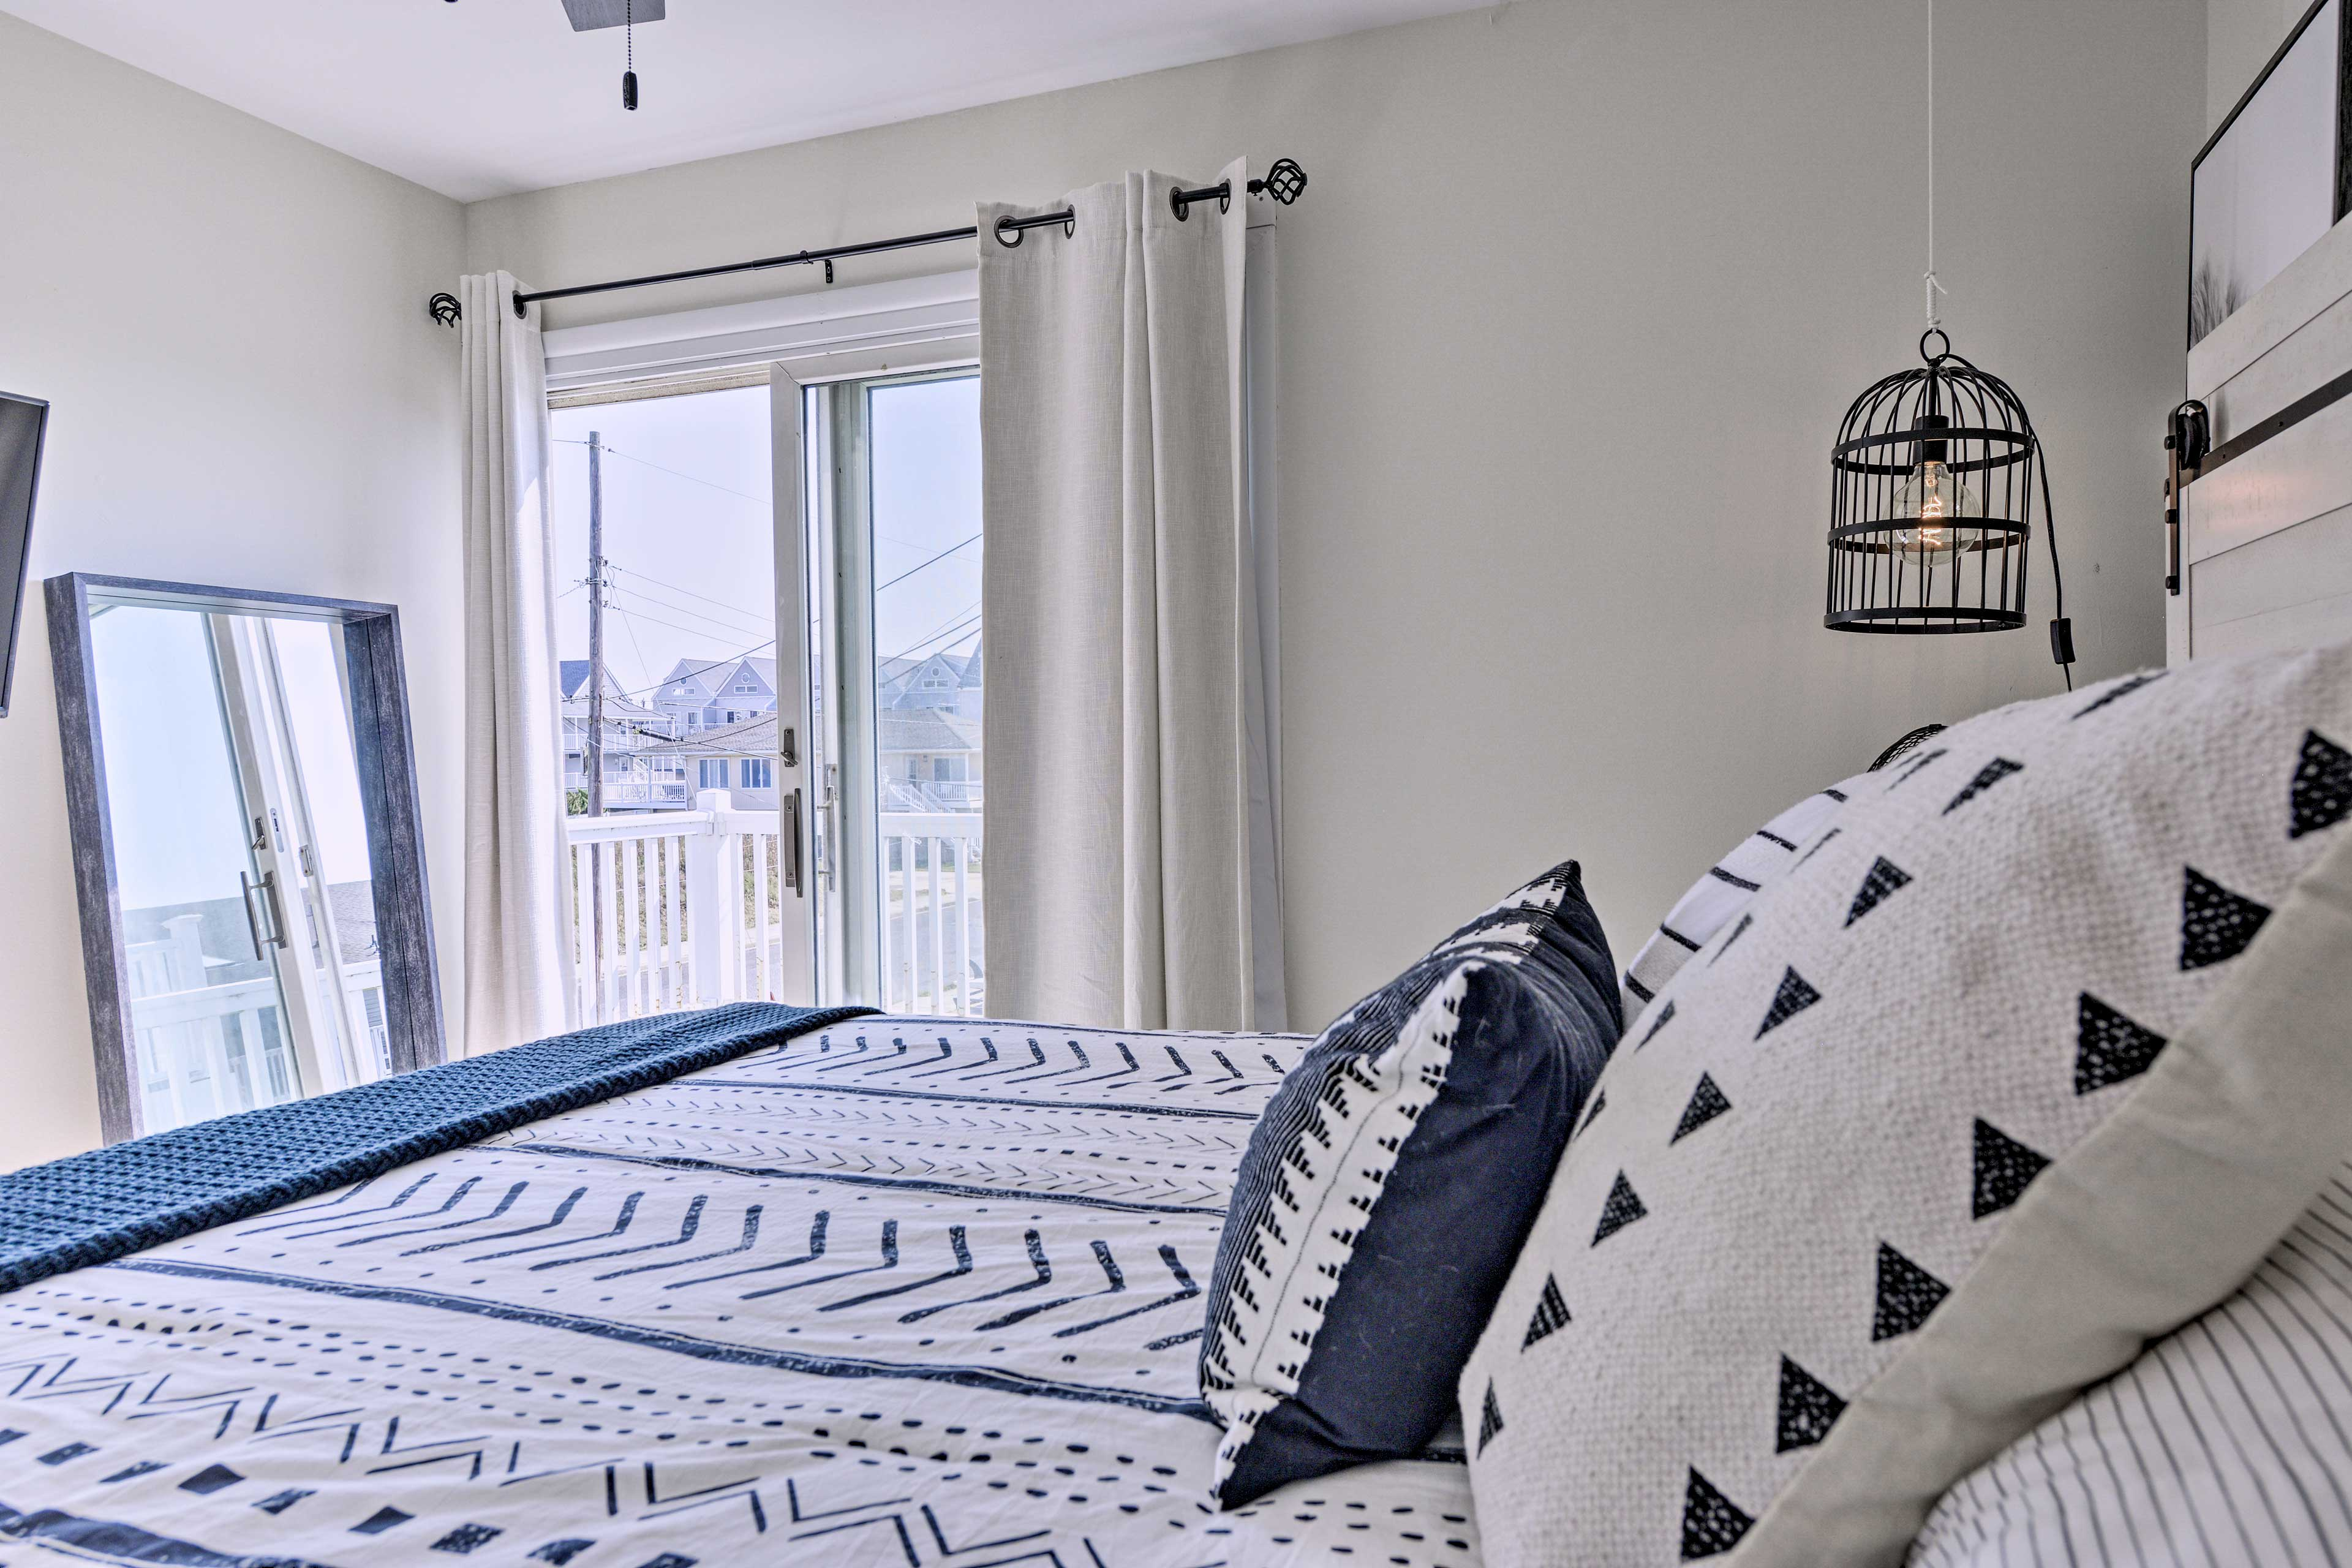 The room includes access to a private deck.